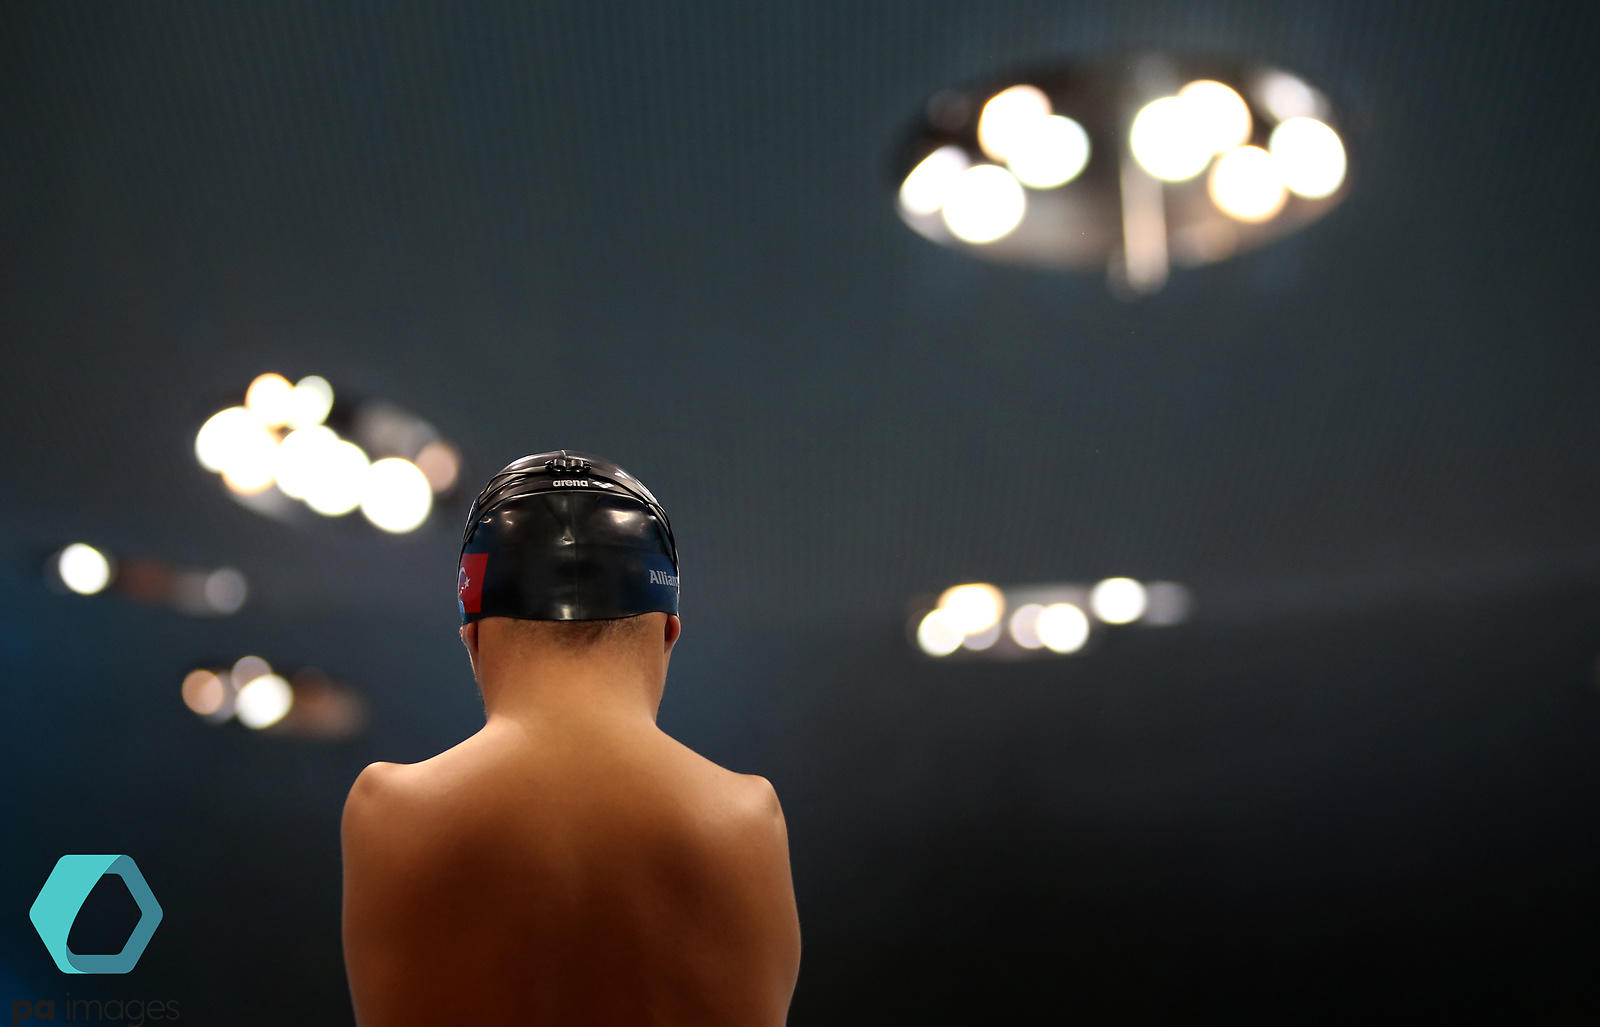 2019 World Para Swimming Allianz Championships - Day Four - London Aquatic Centre